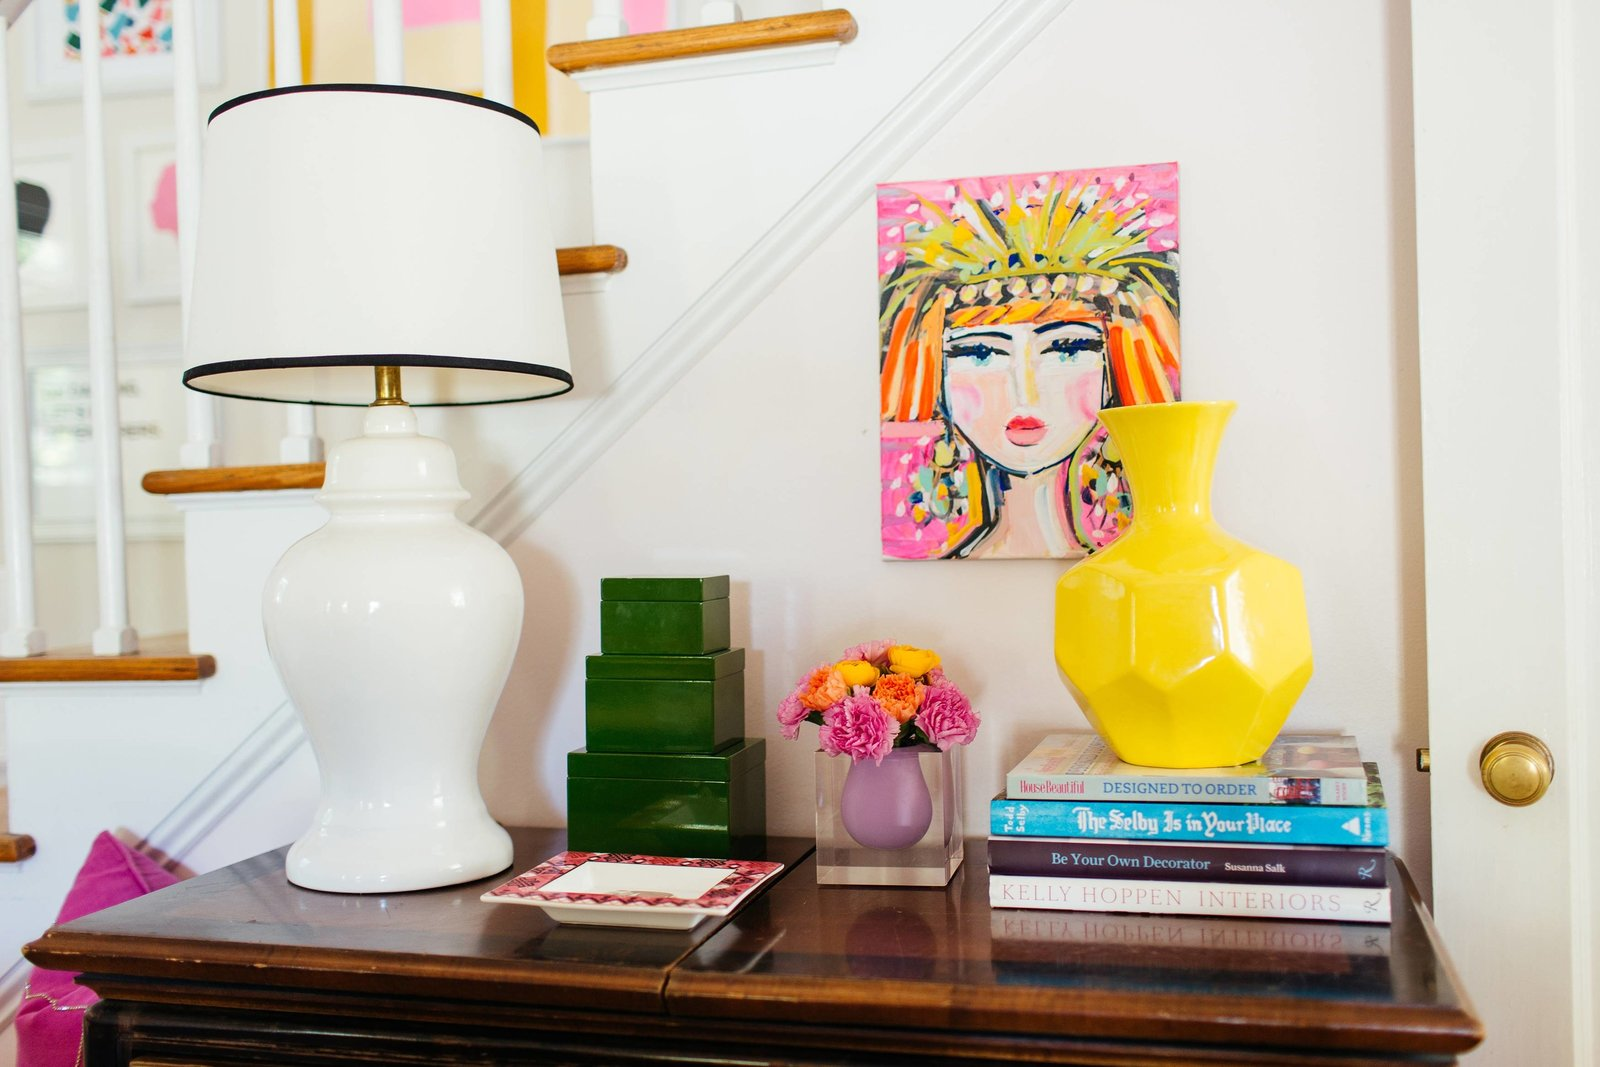 A side table with a white lamp and accessories.